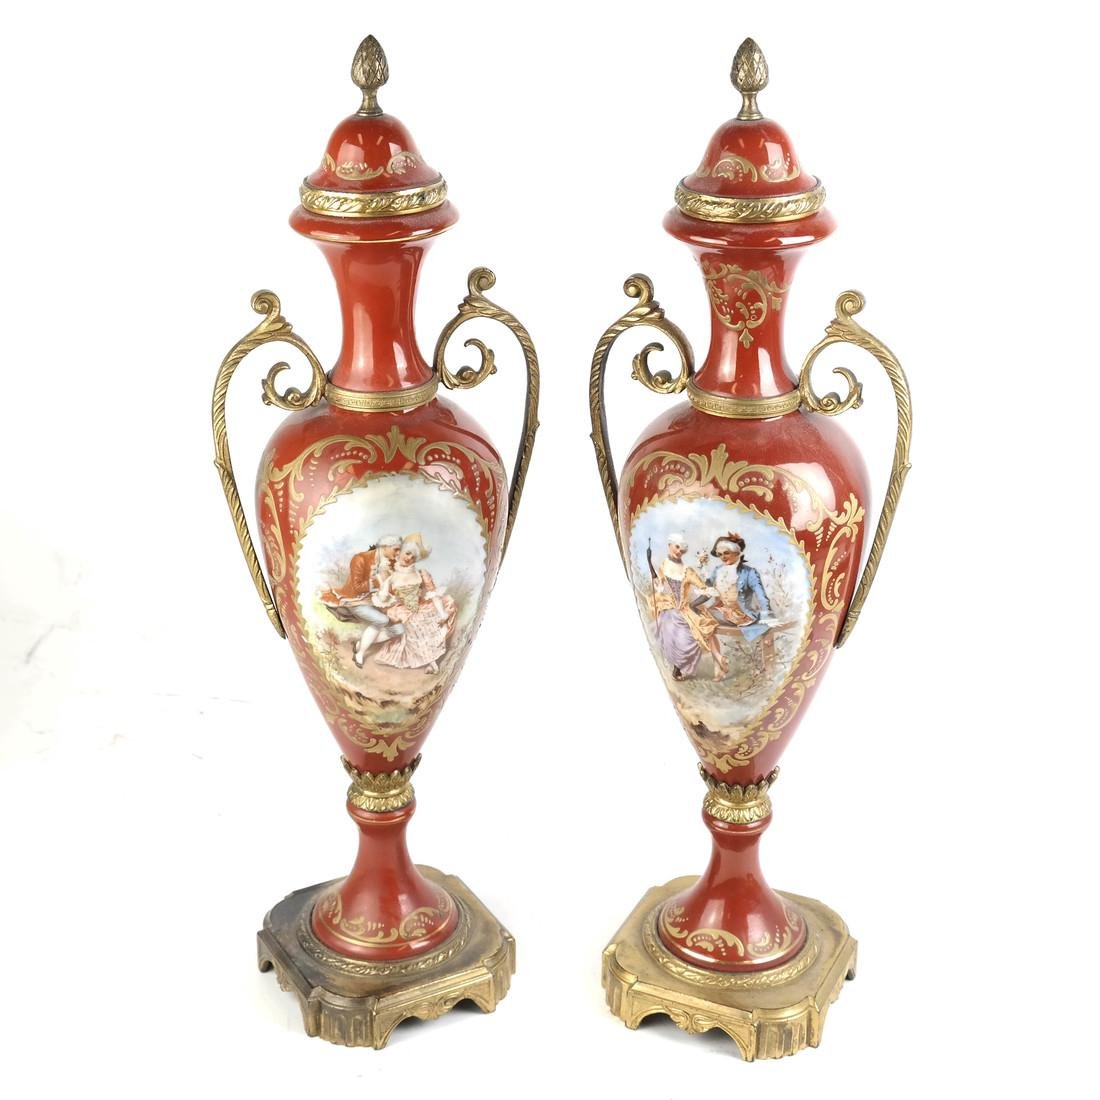 Pair of Serves-Style Lamps